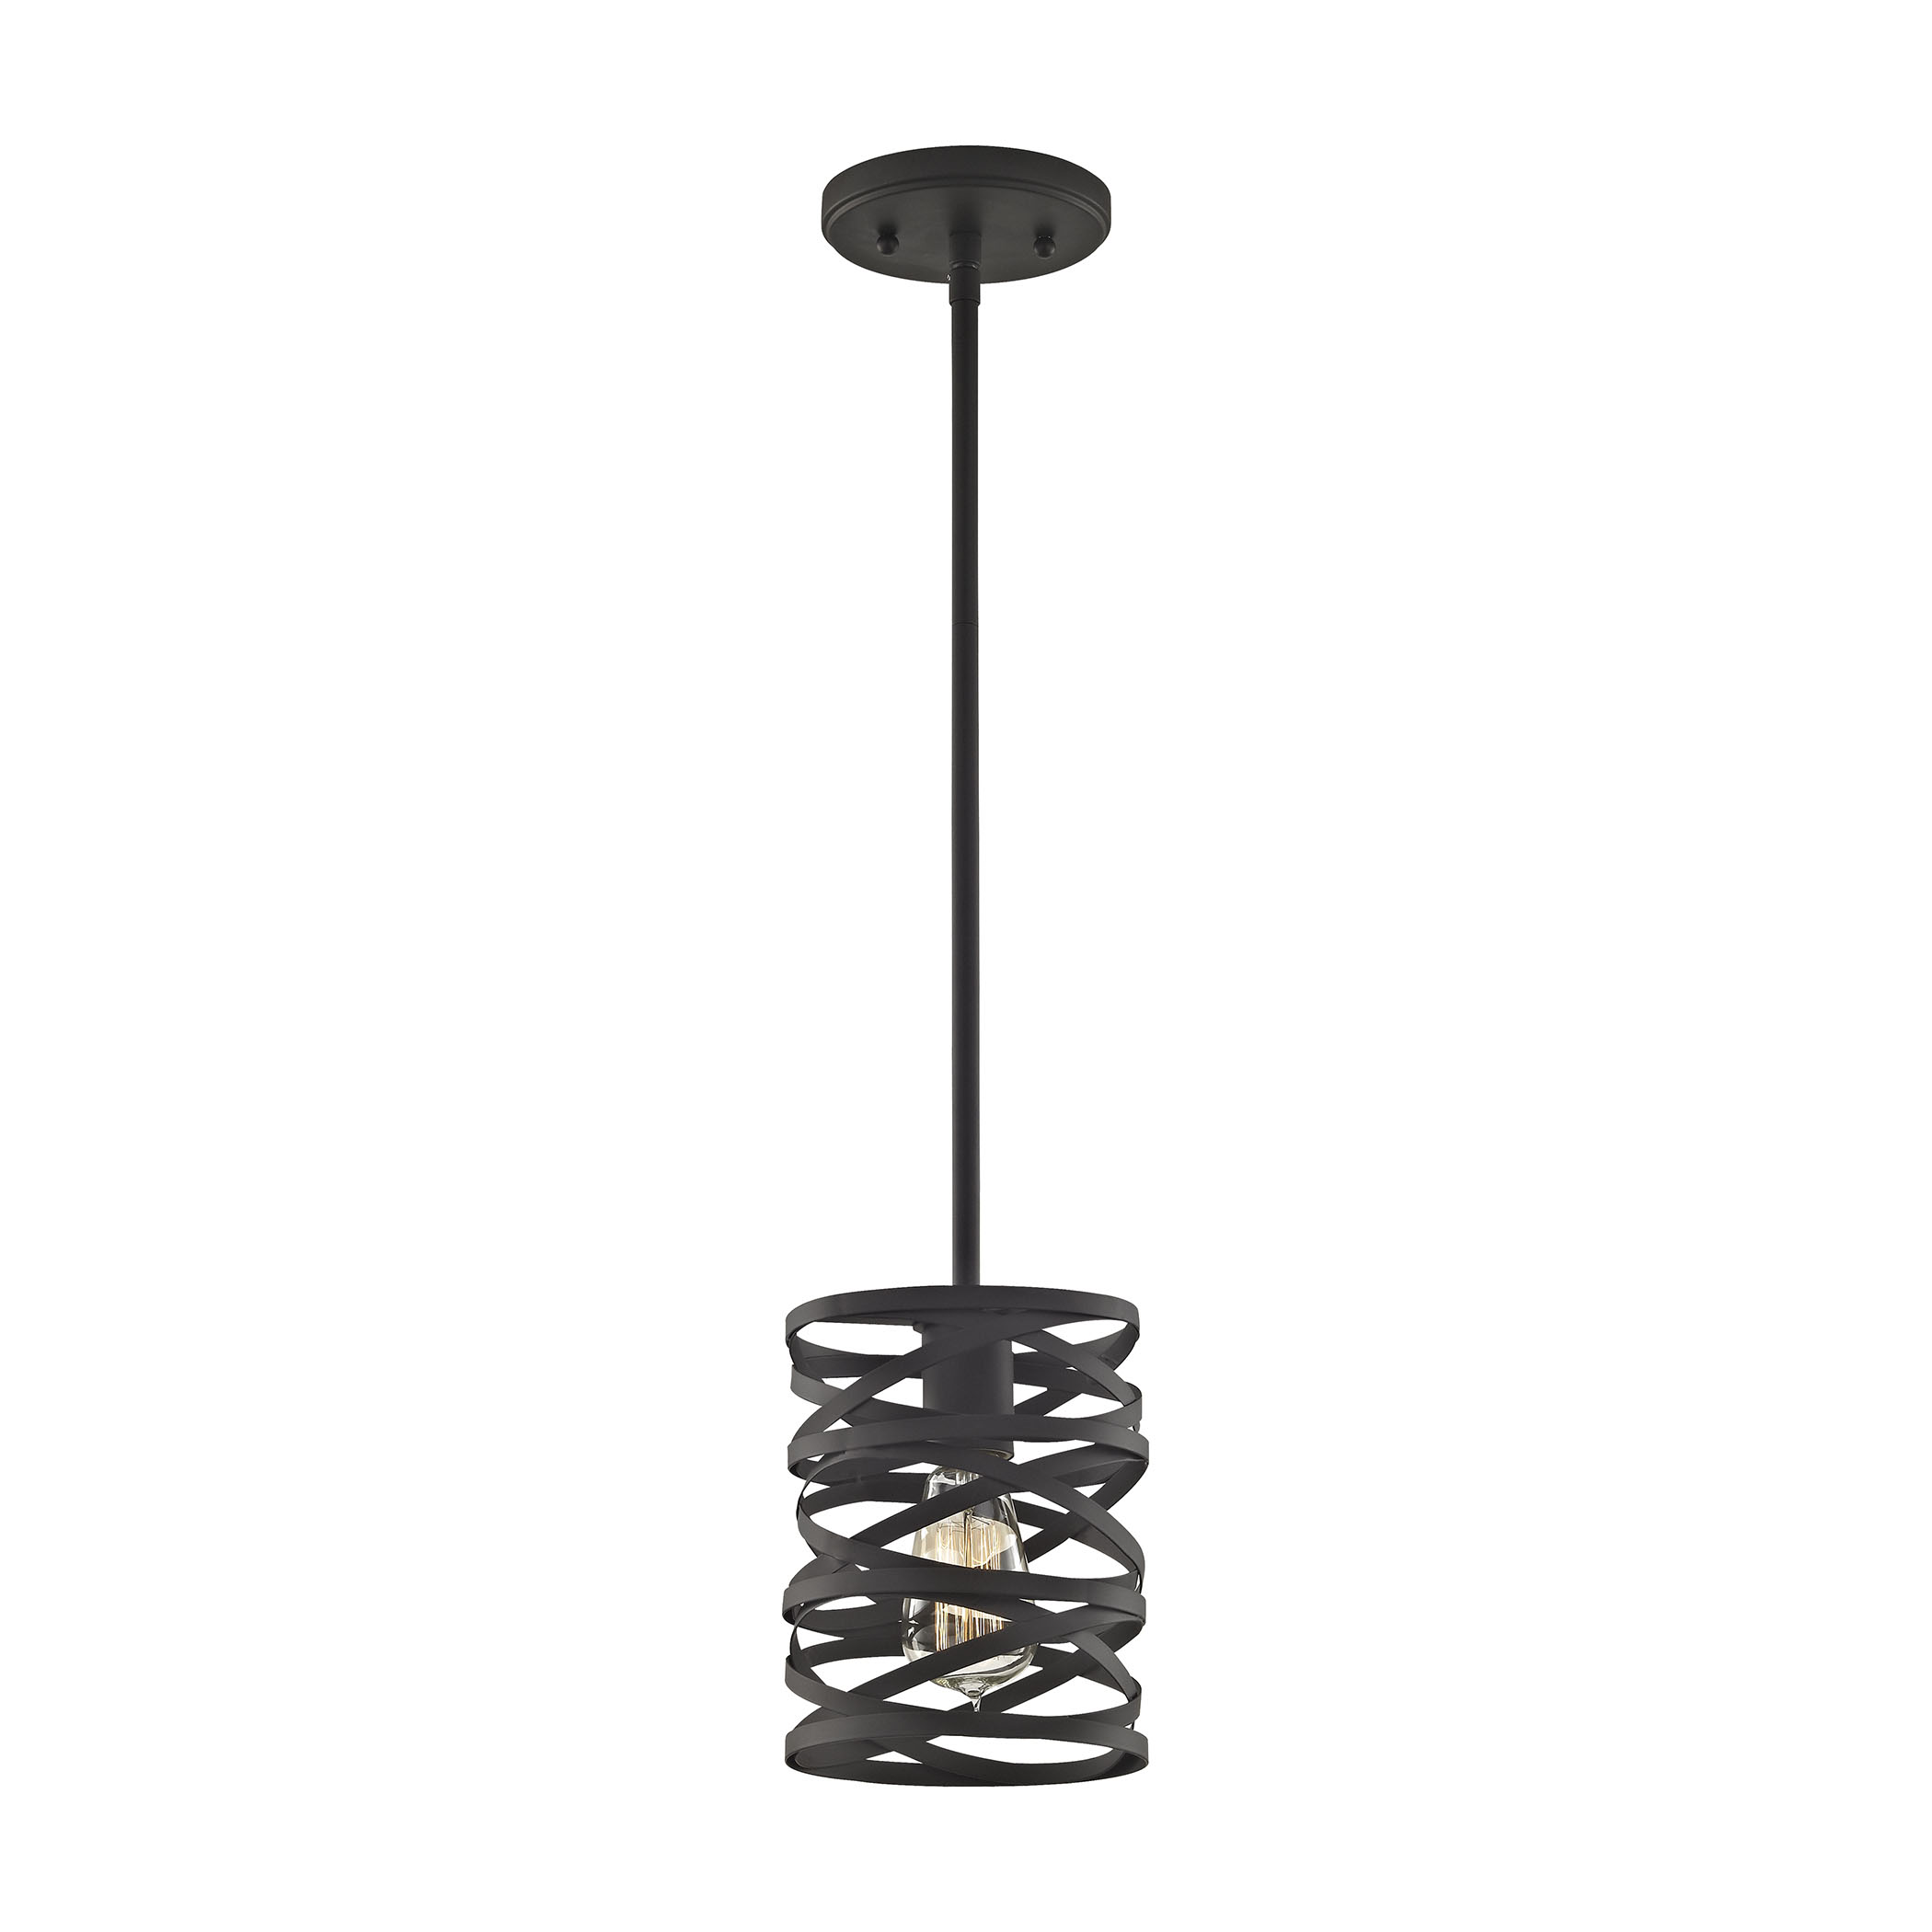 Vorticy 1 Light Pendant In Oil Rubbed Bronze - Includes Recessed Lighting Kit - image 1 of 1